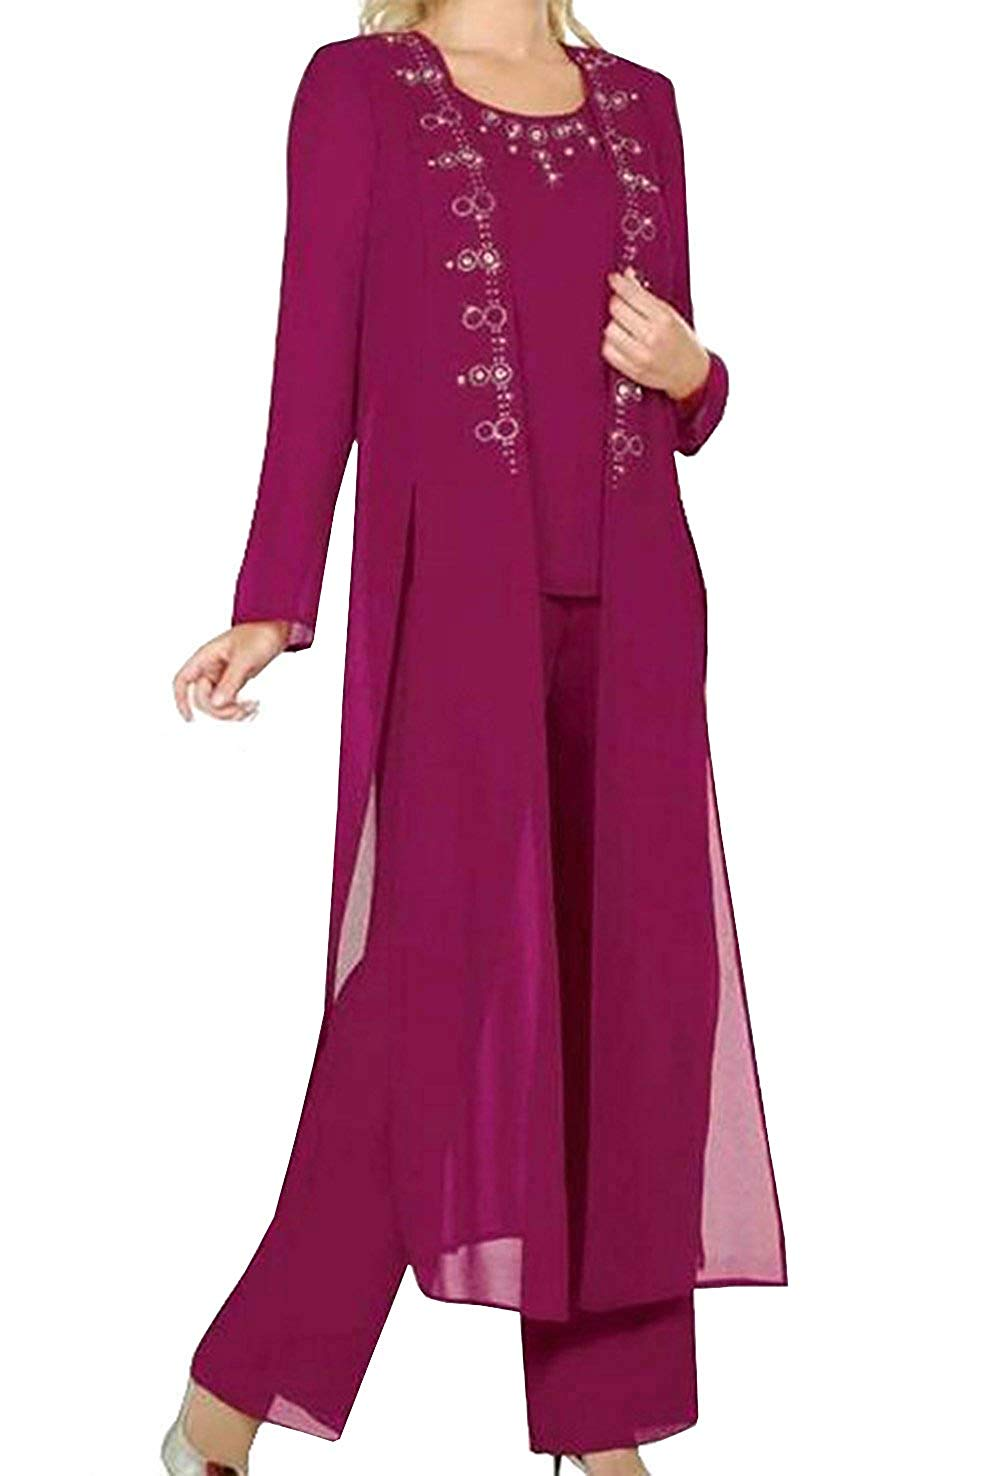 43a16b54f Load image into Gallery viewer, Fitty Lell Women's Burgundy Chiffon 3